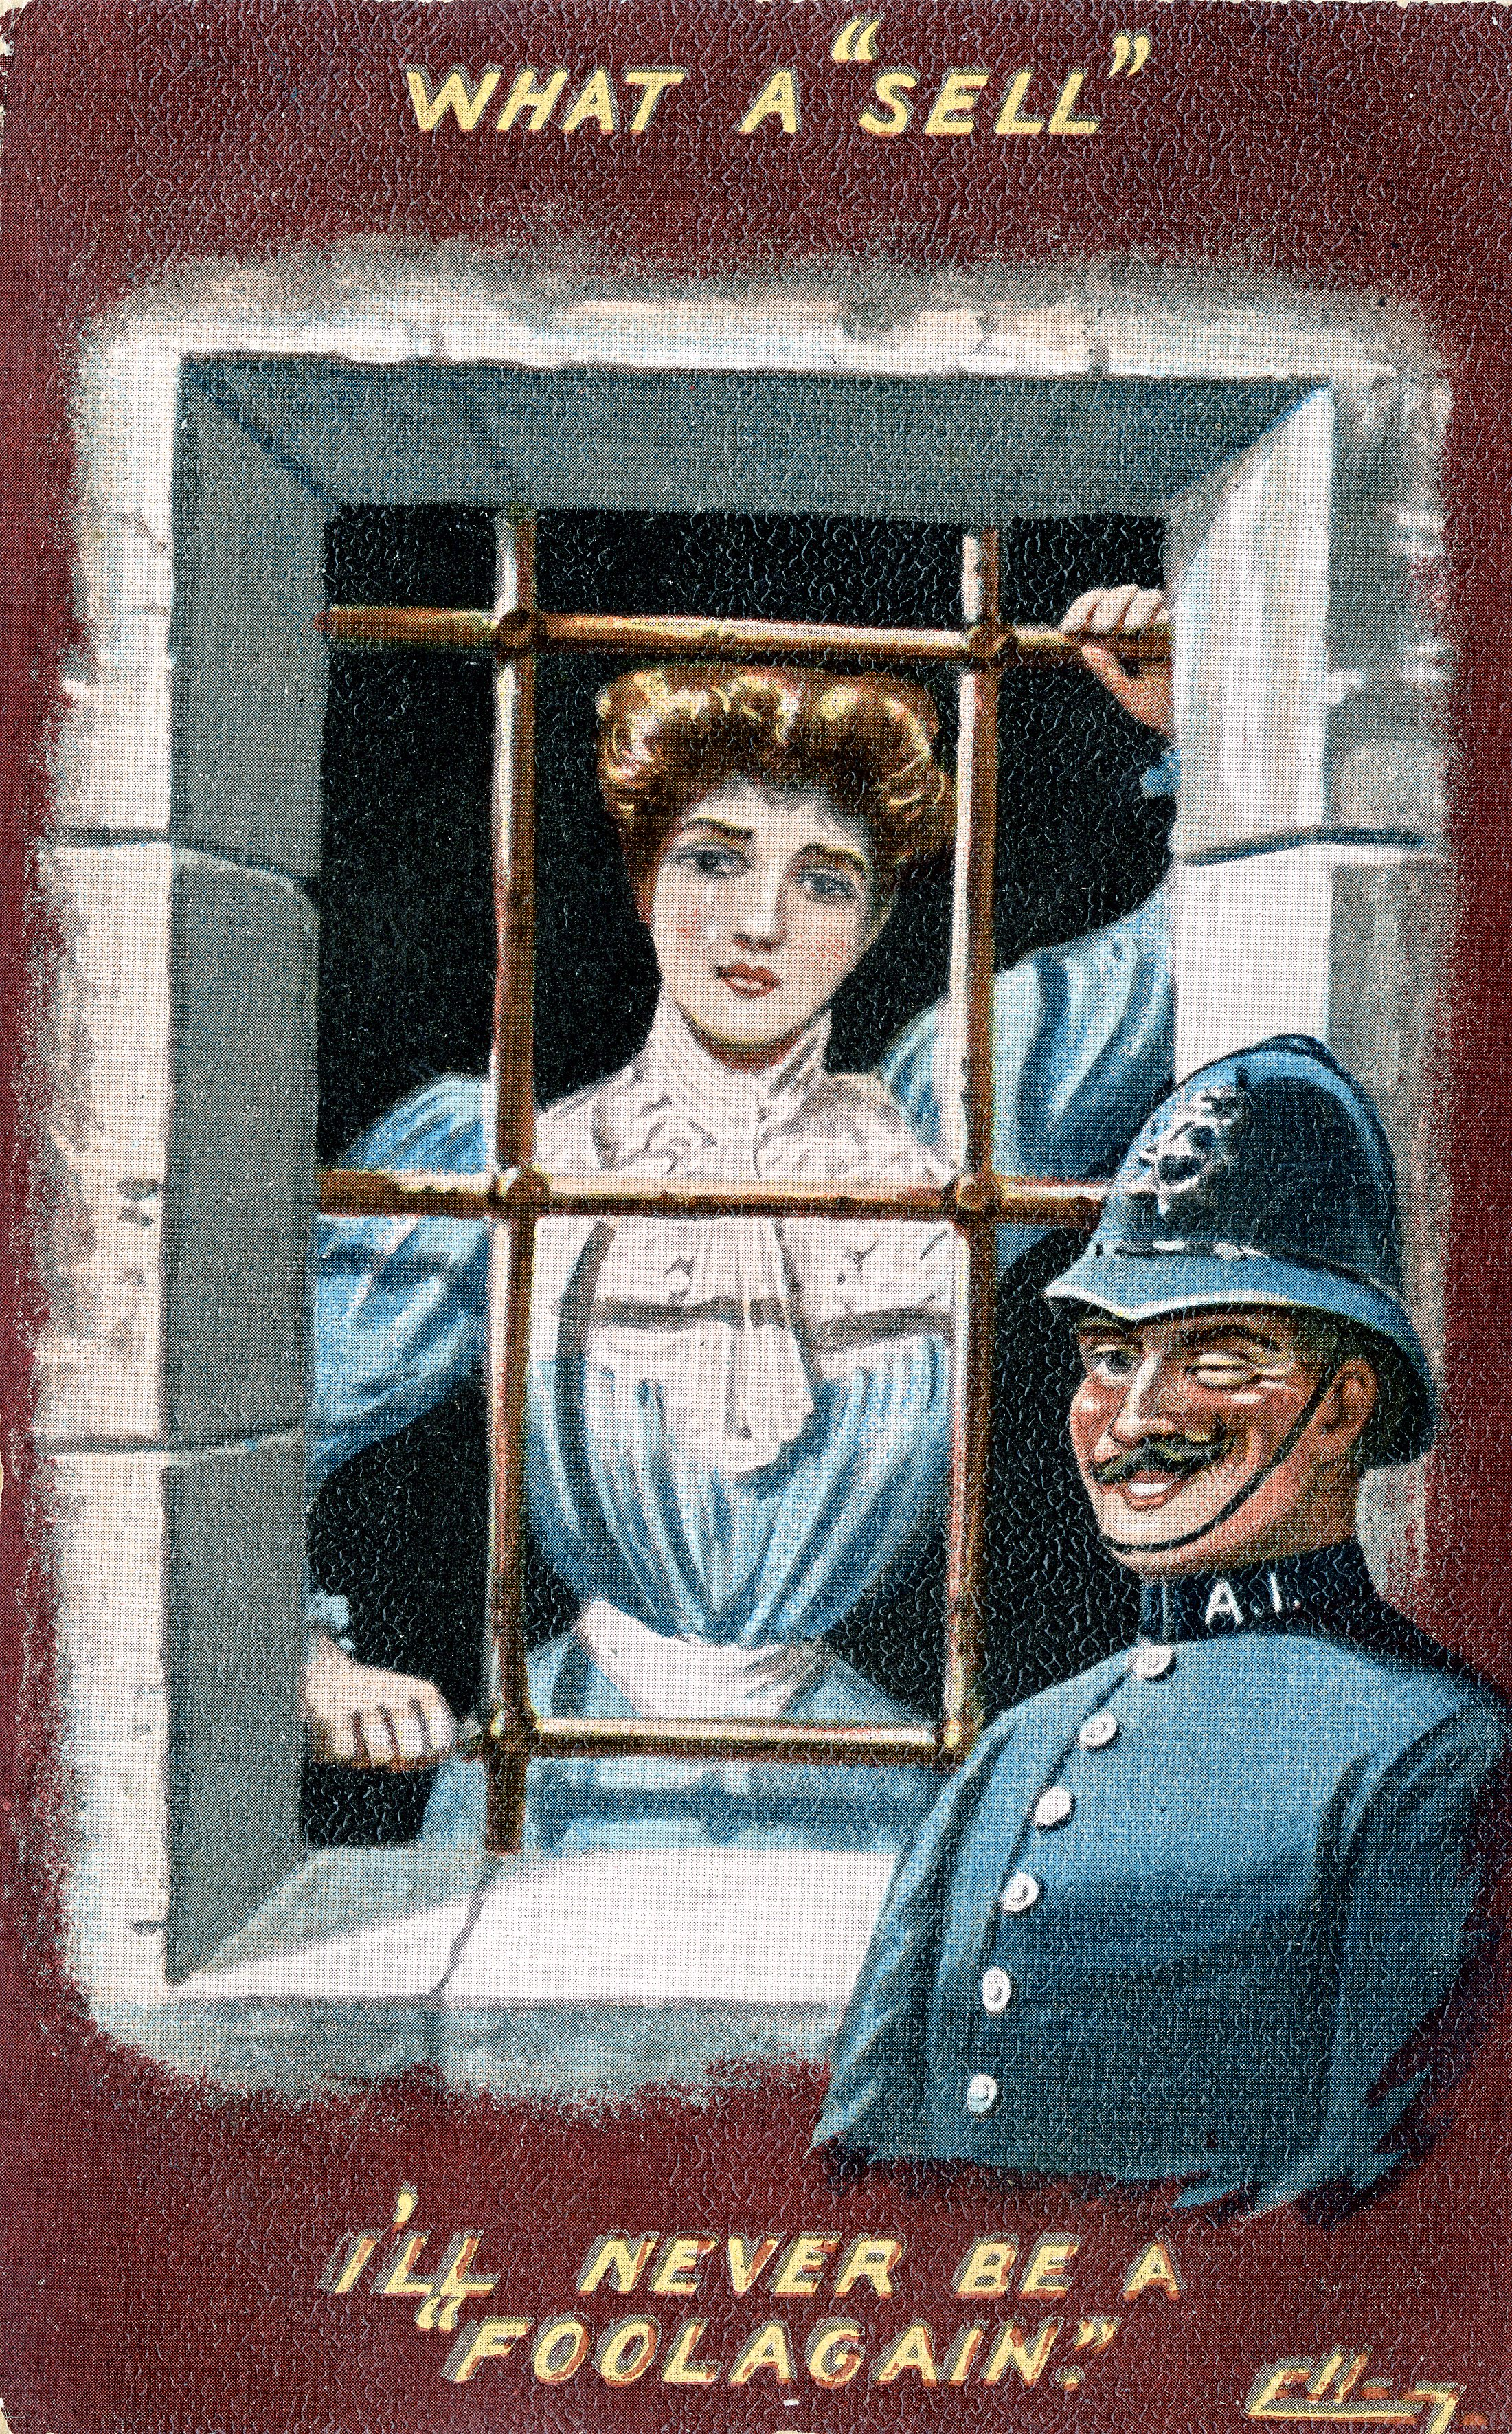 suffragette in cell